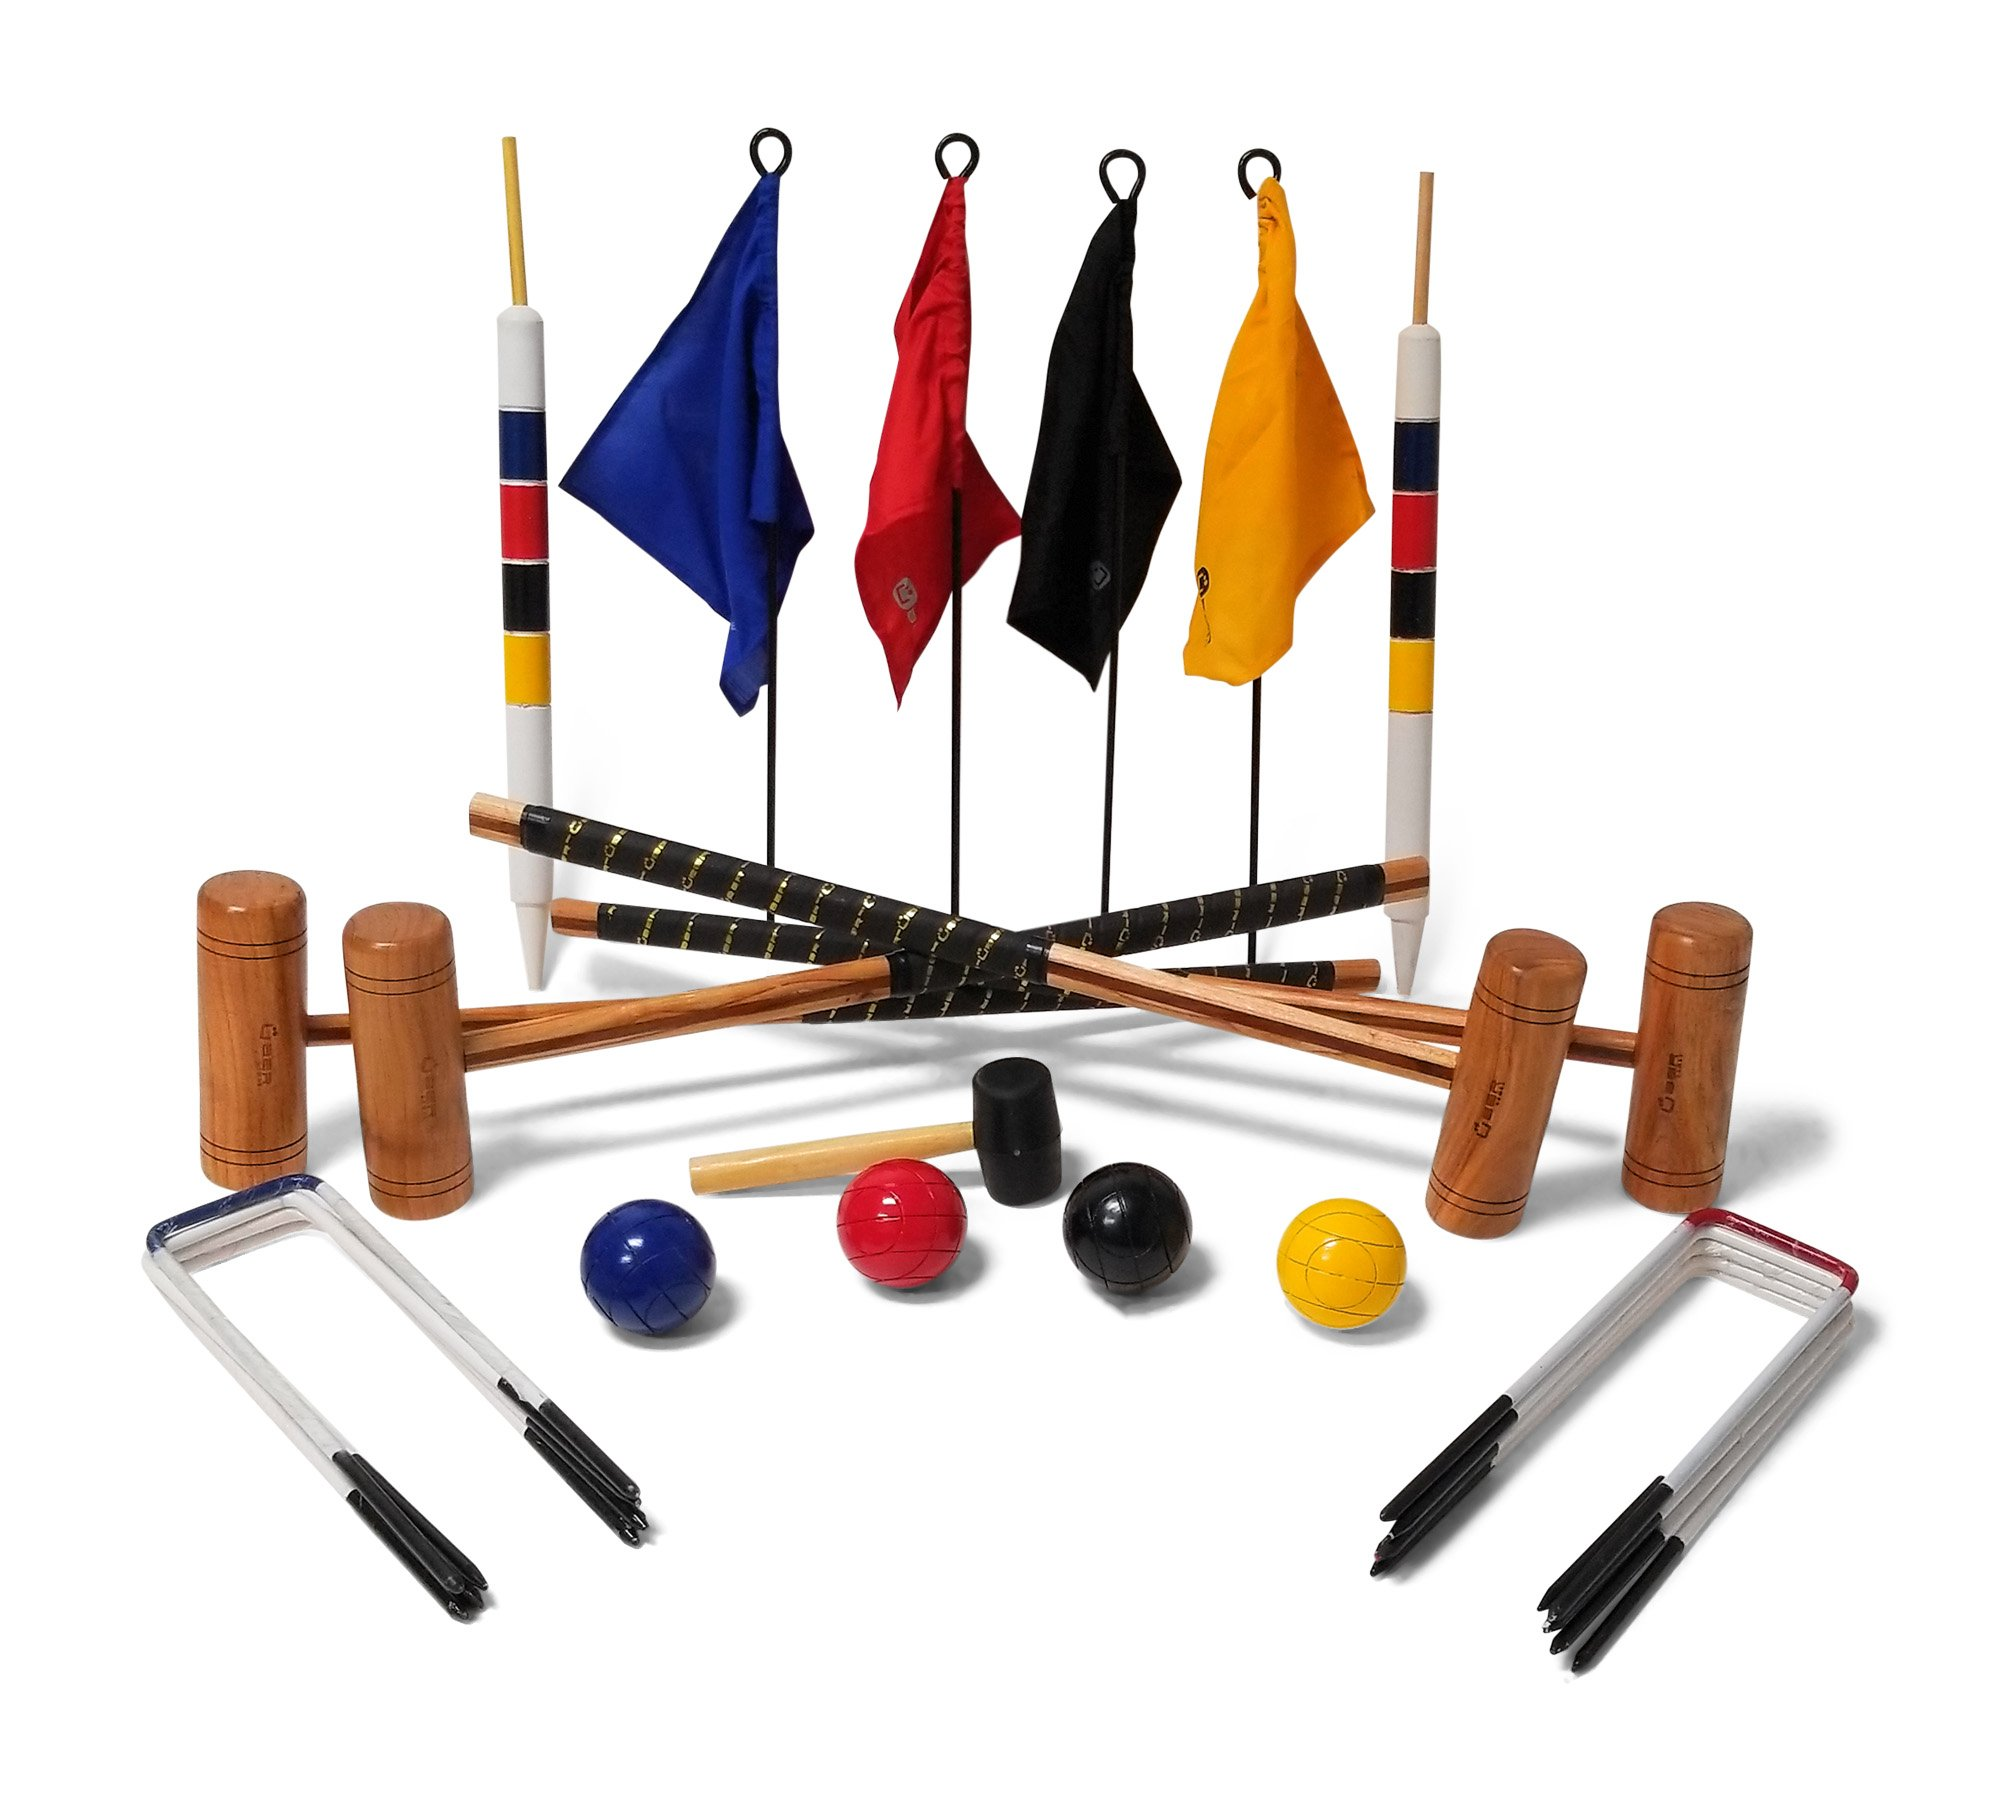 Uber Games 9 Wicket Croquet Set - Garden - 4 Player by Uber Games (Image #1)